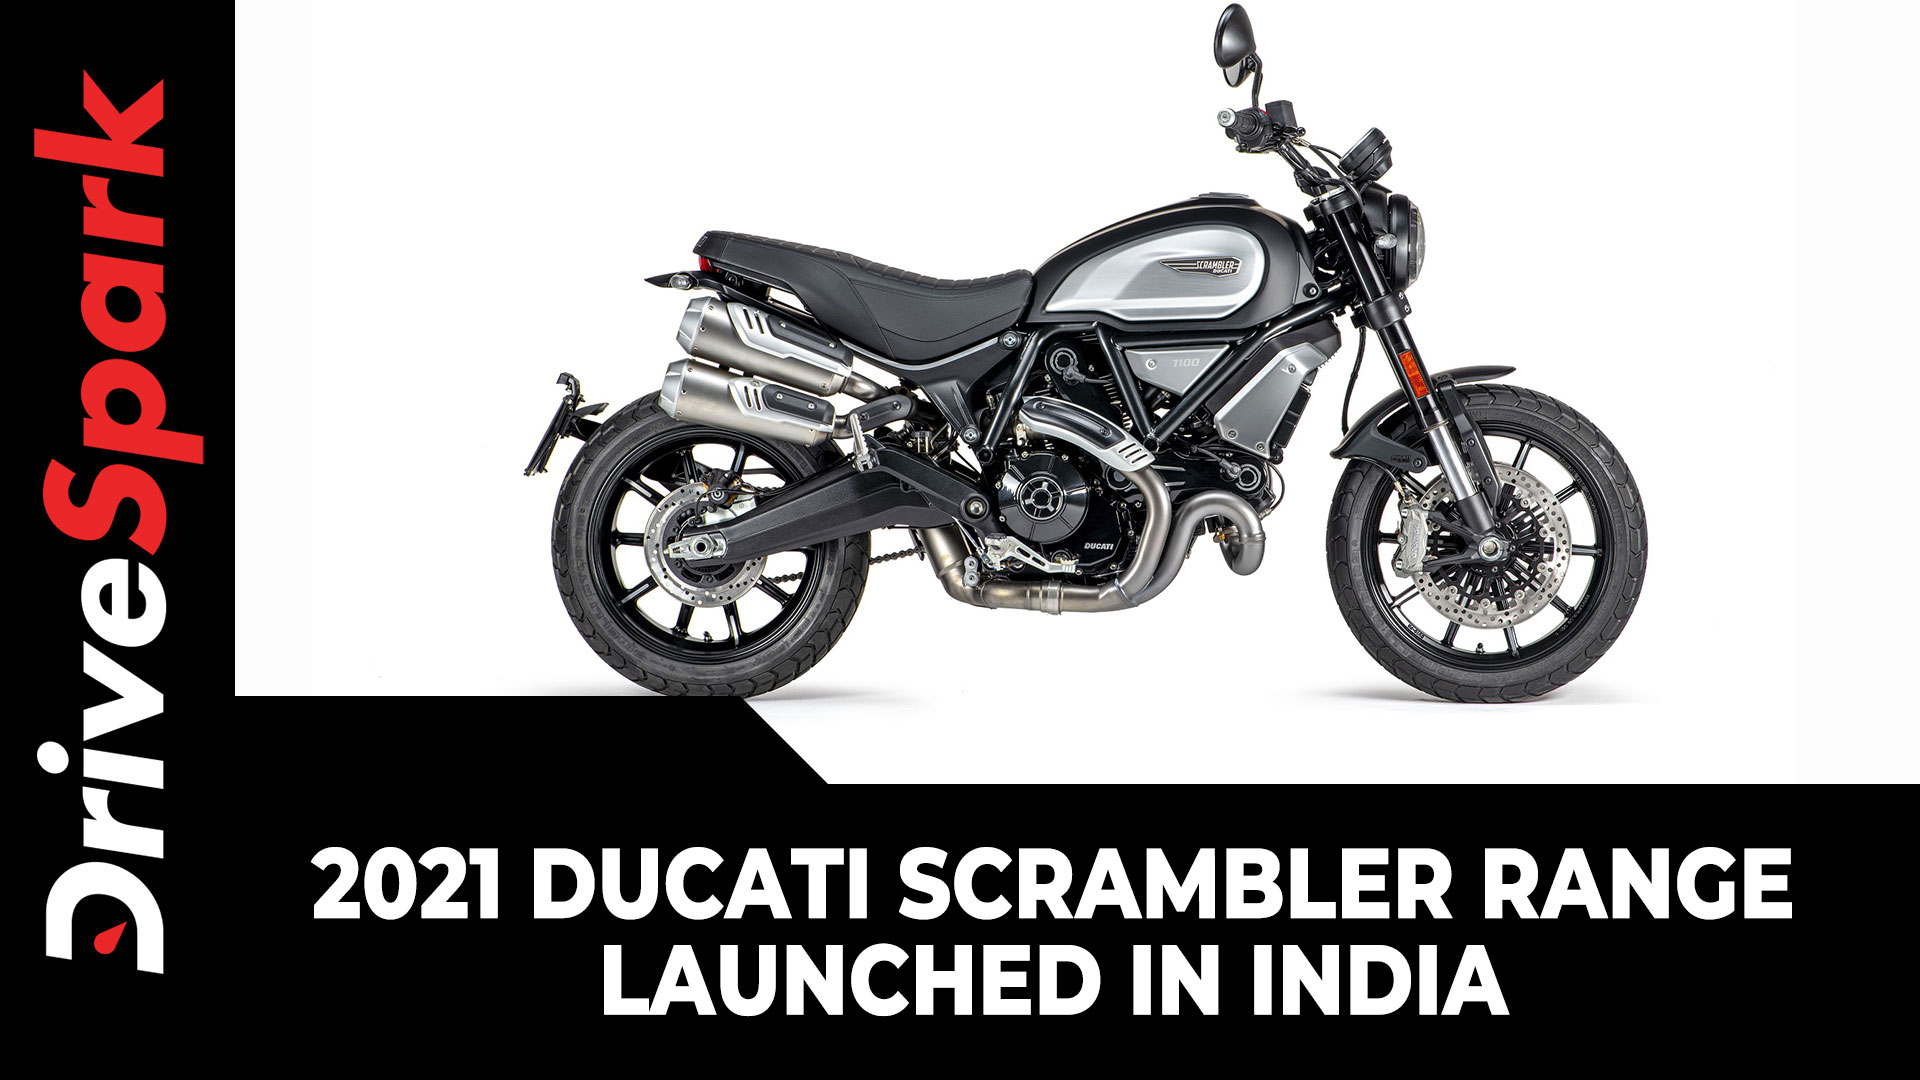 2021 Ducati Scrambler Range Launched In India | Price, Variants, Specs & Other Details